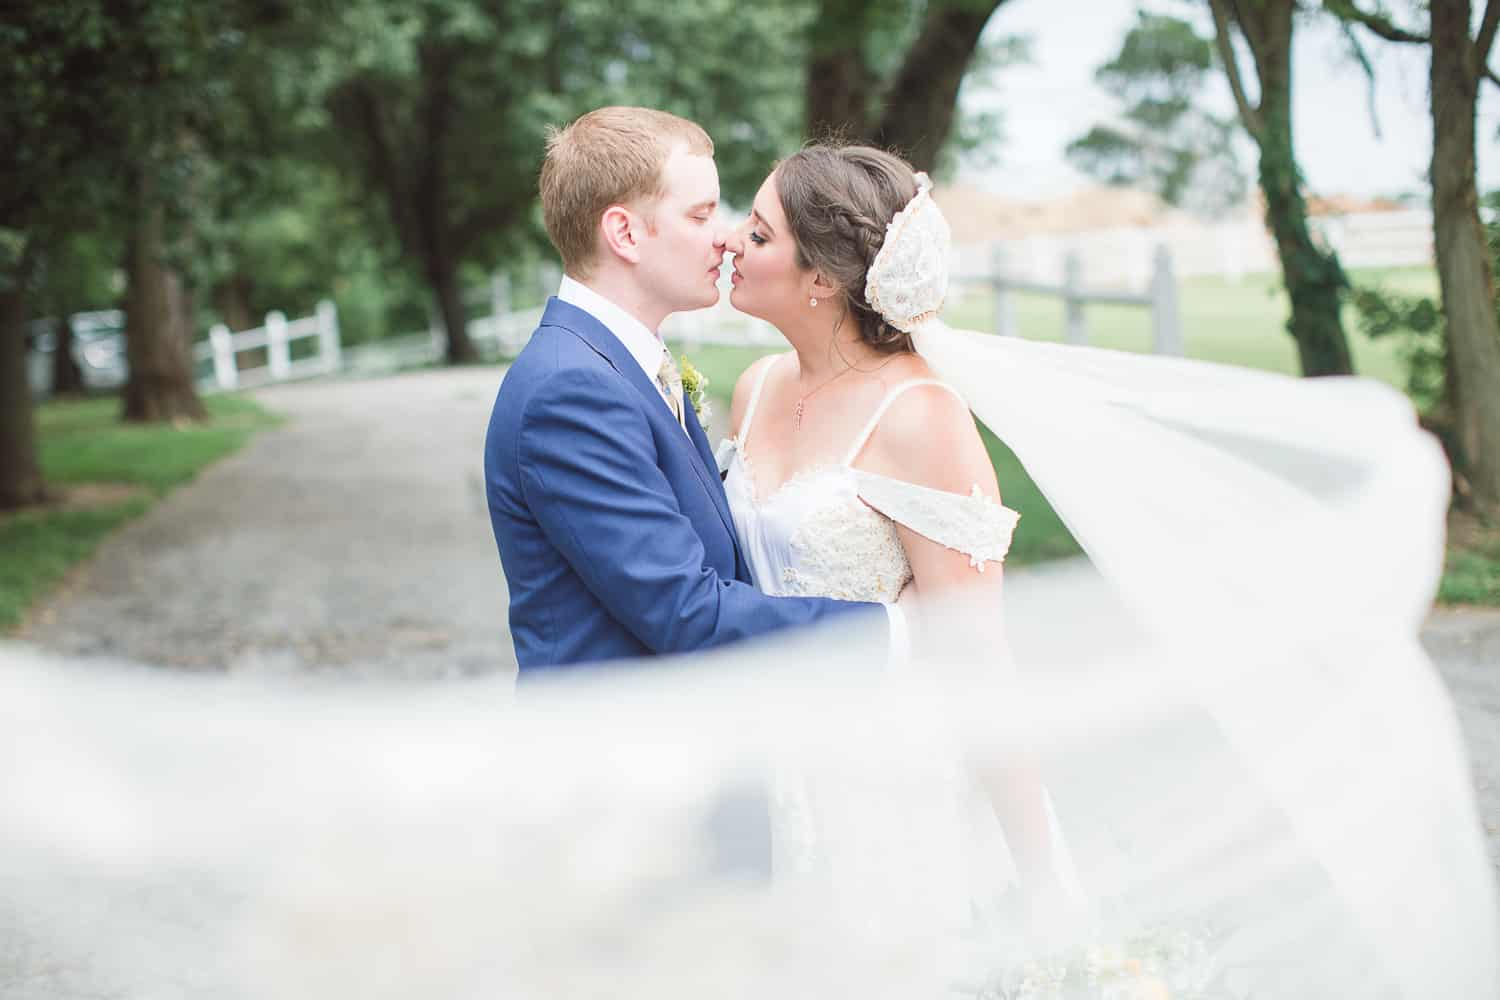 Summer wedding in Kansas City